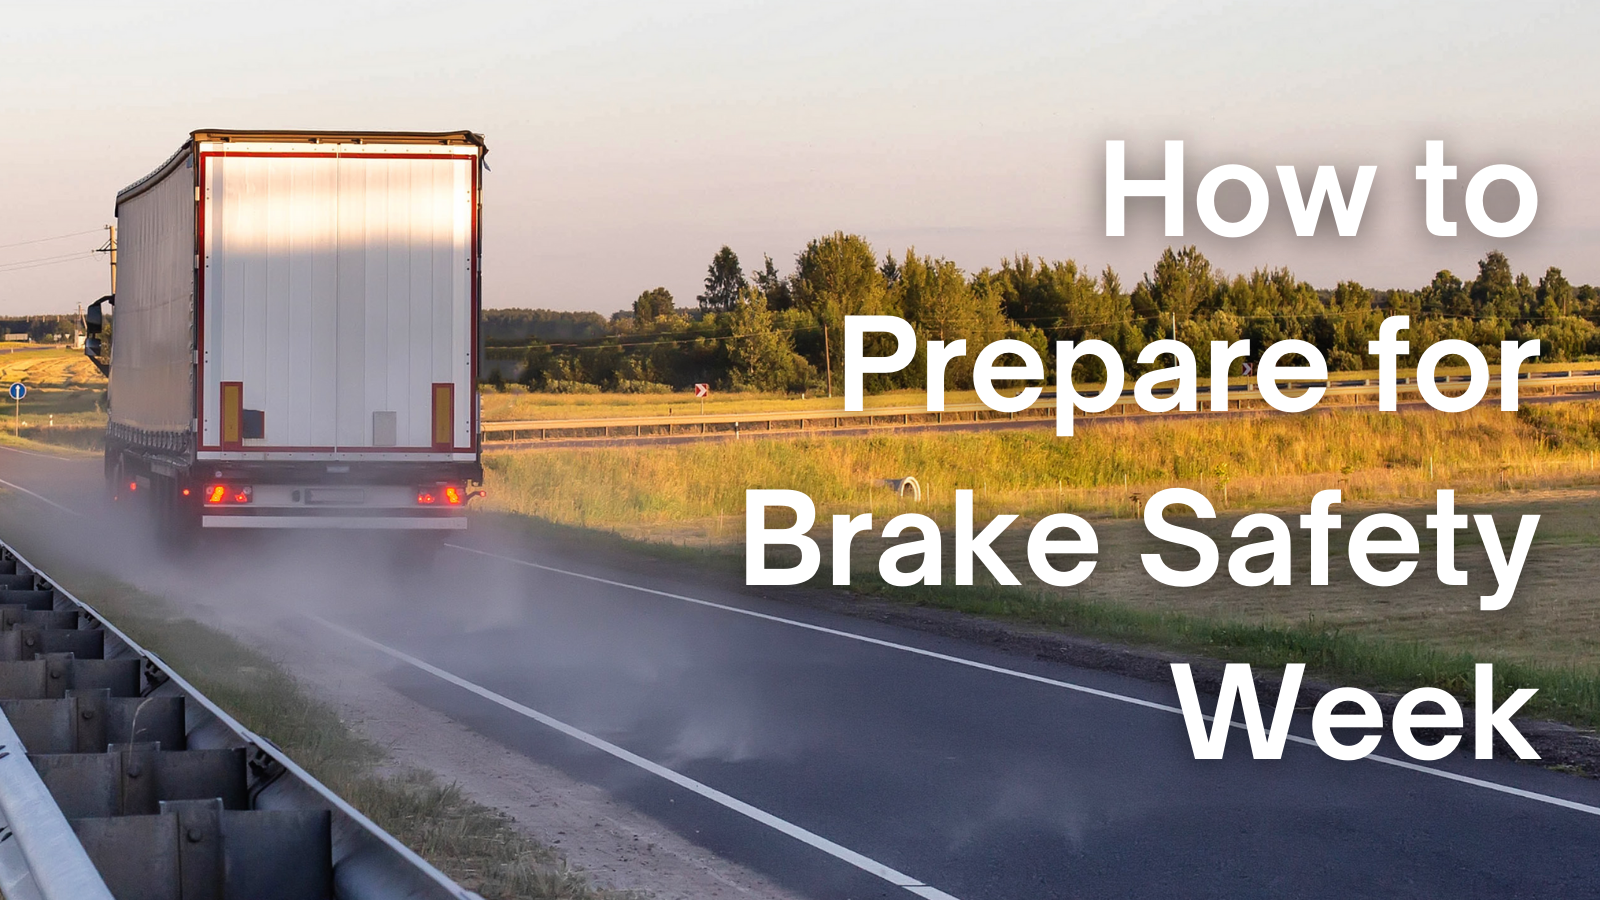 Tips on How to Prepare for Brake Safety Week